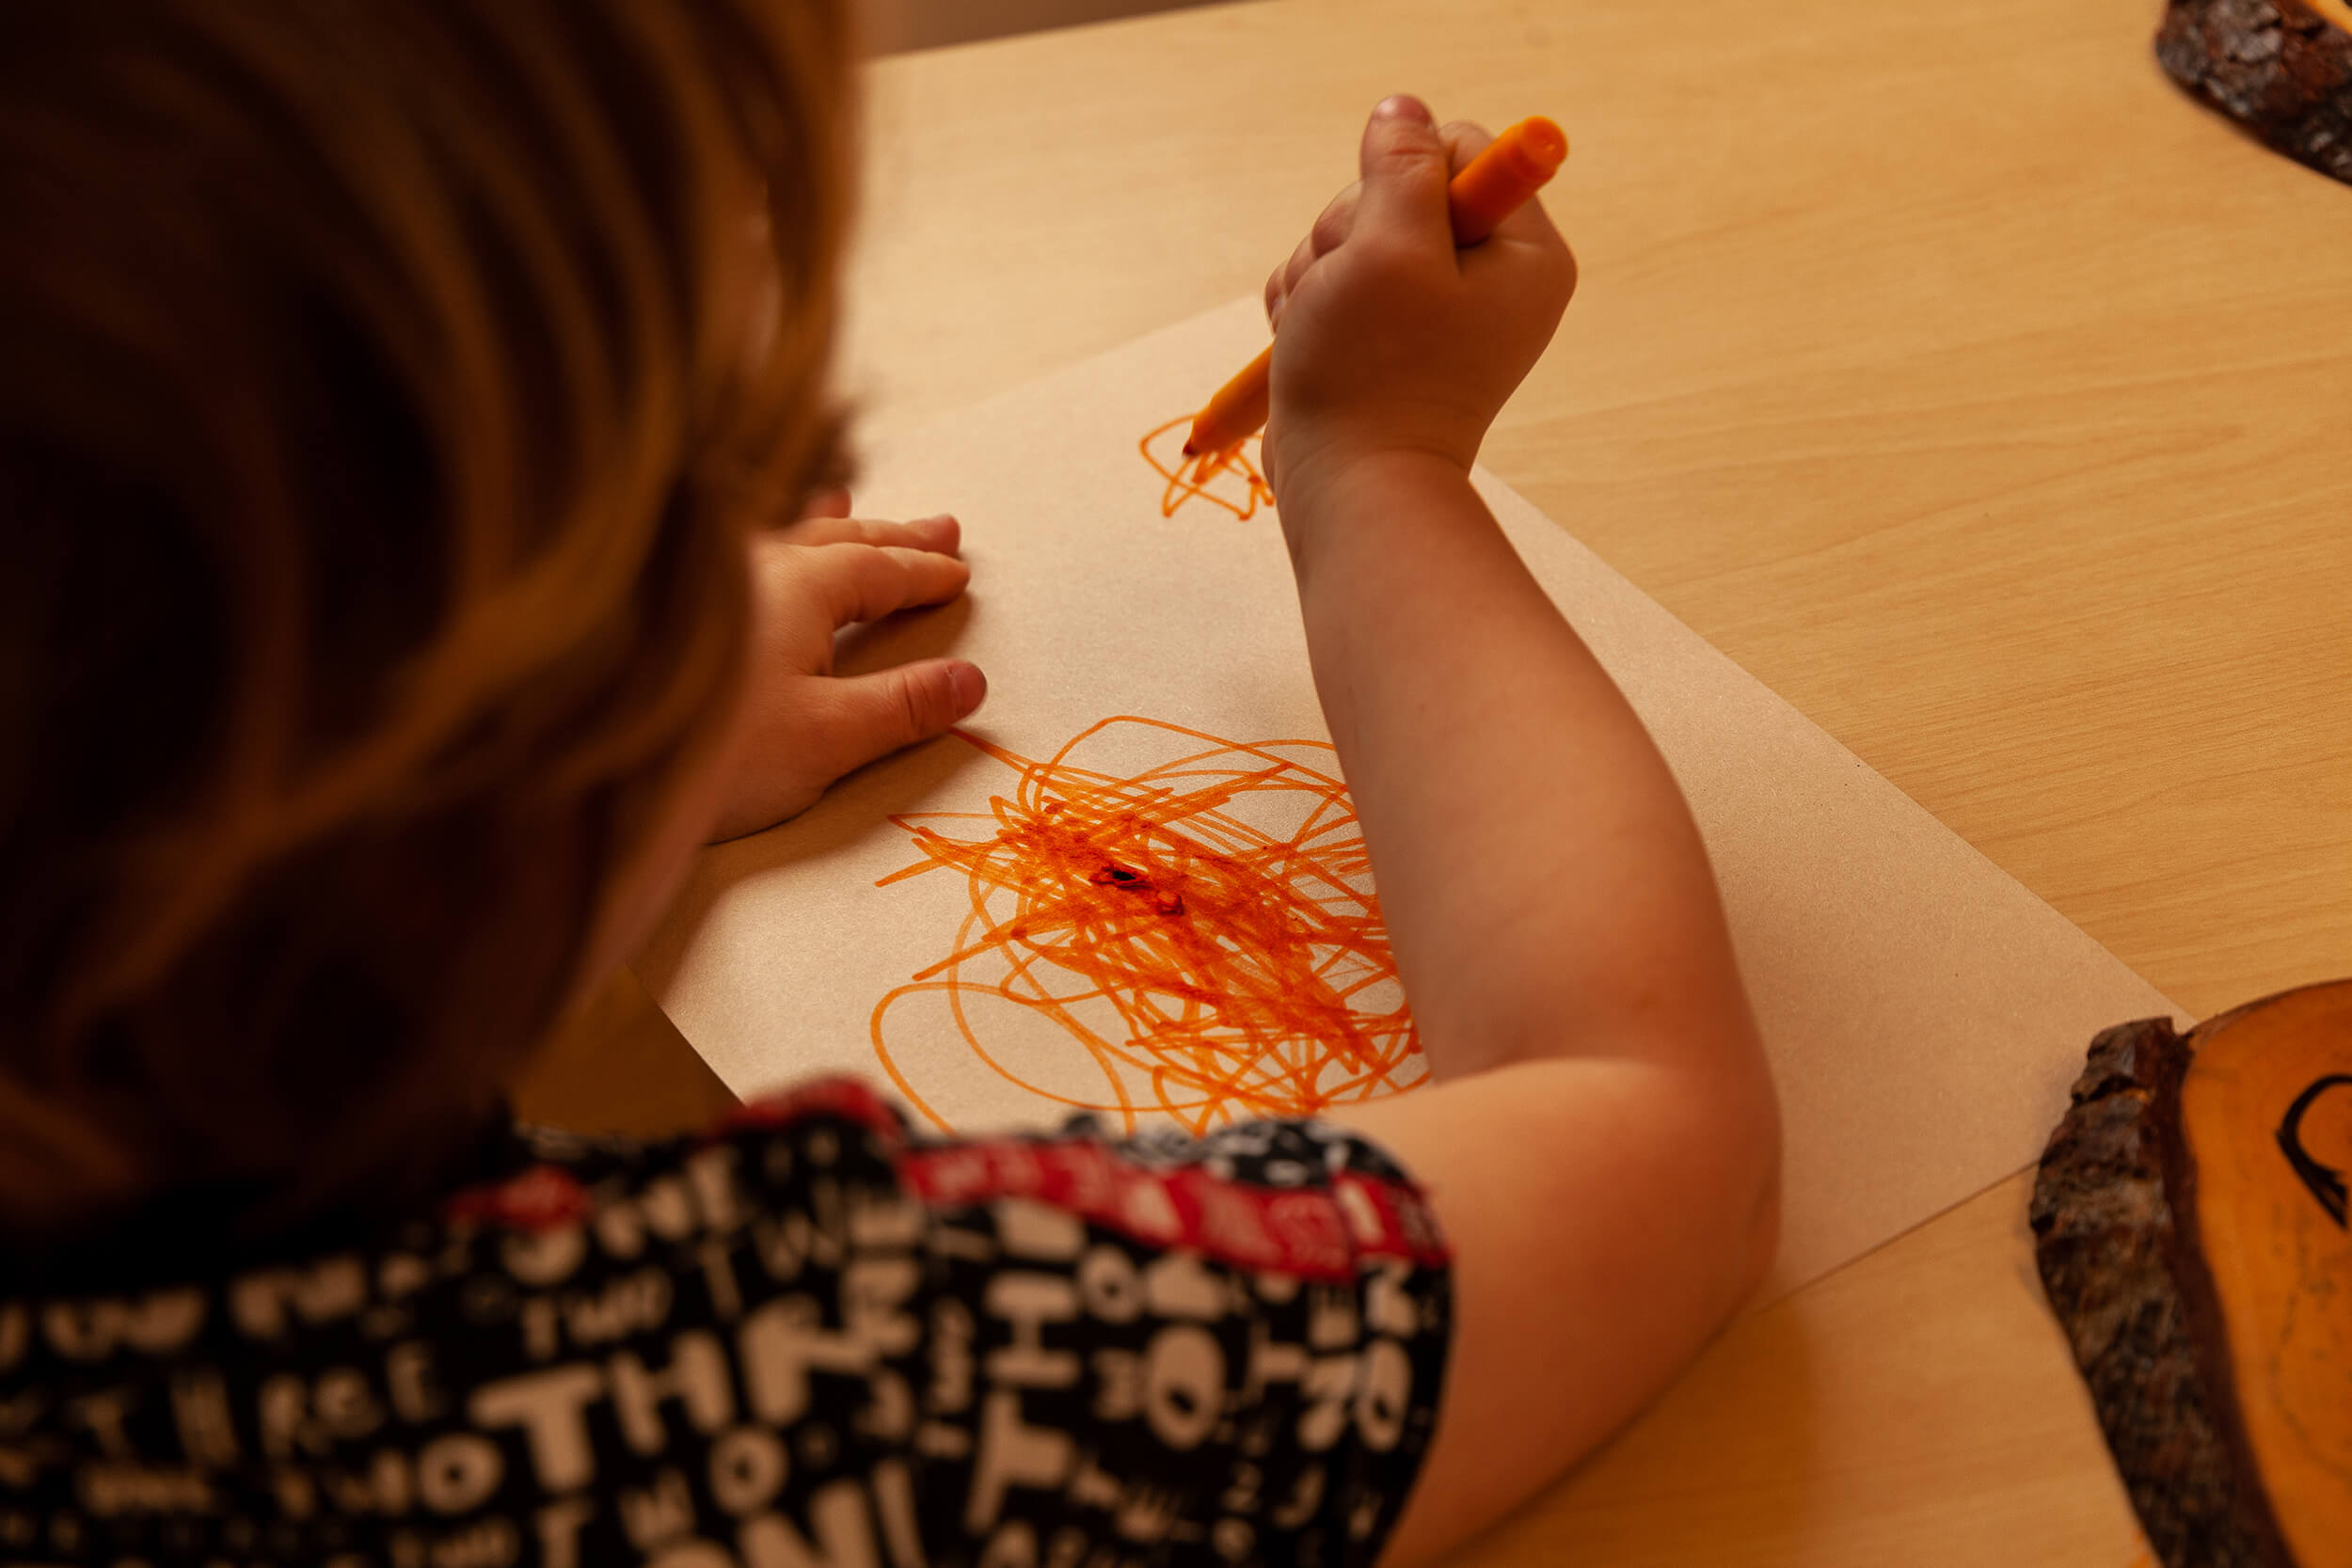 Drawing with a felt tip pen